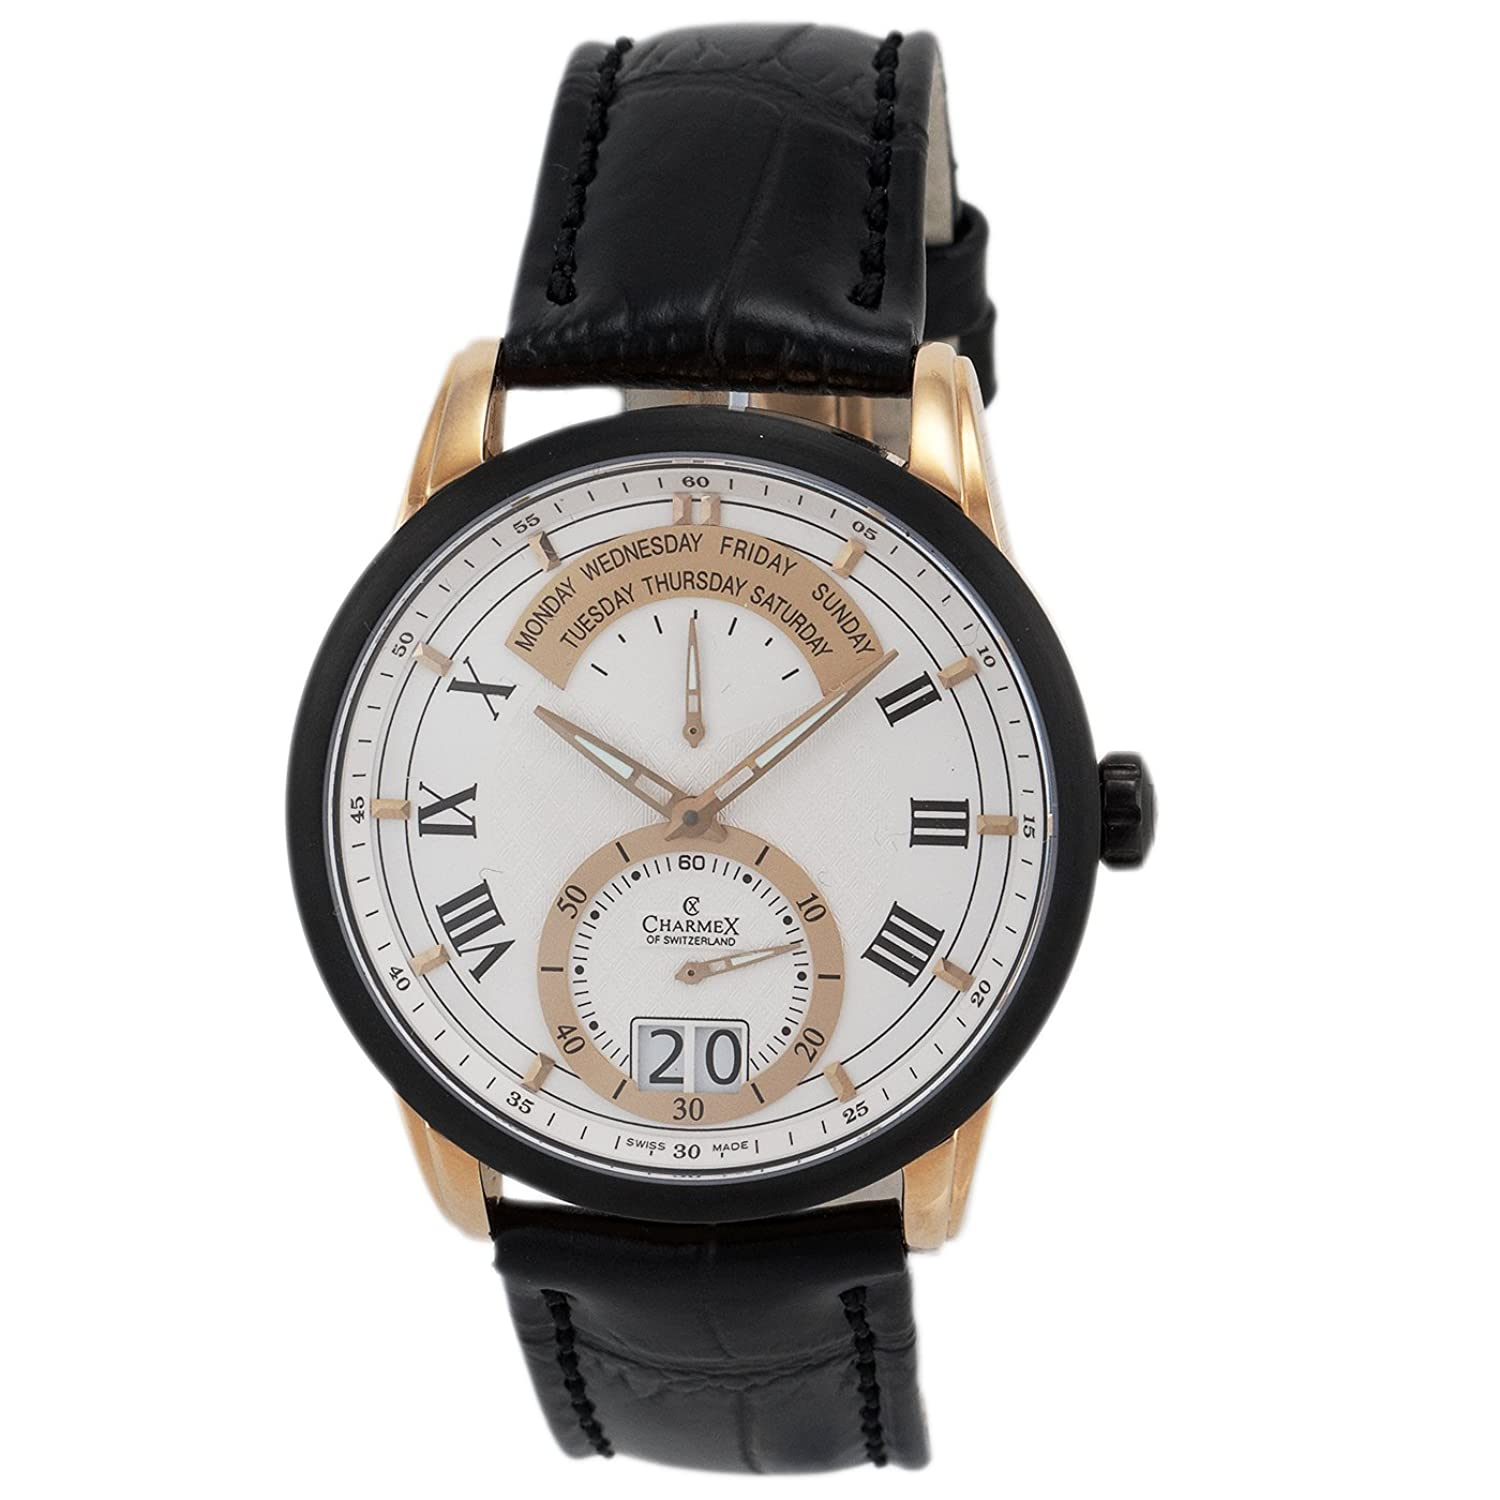 Charmex Men's 2145 Zermatt Retrograde Big Date Calendar Watch